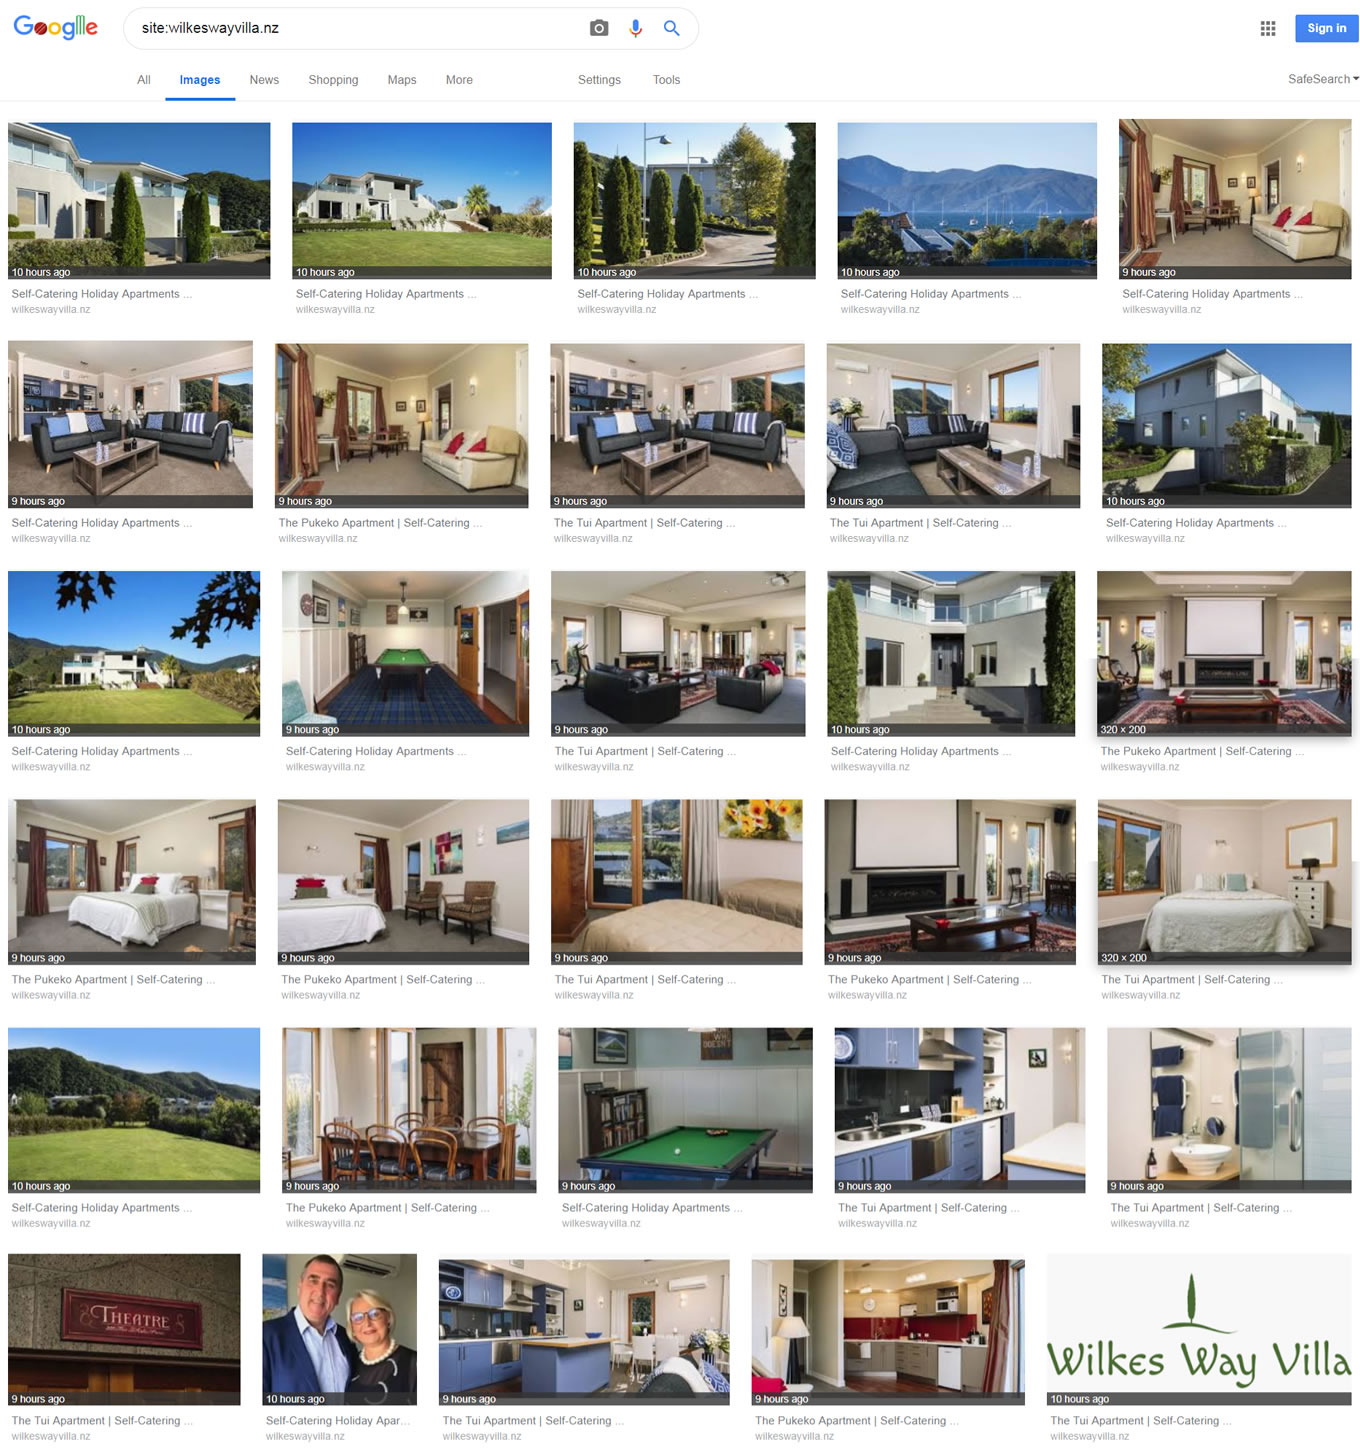 Wilkes Way Villa Image Search Results On 2019-05-30